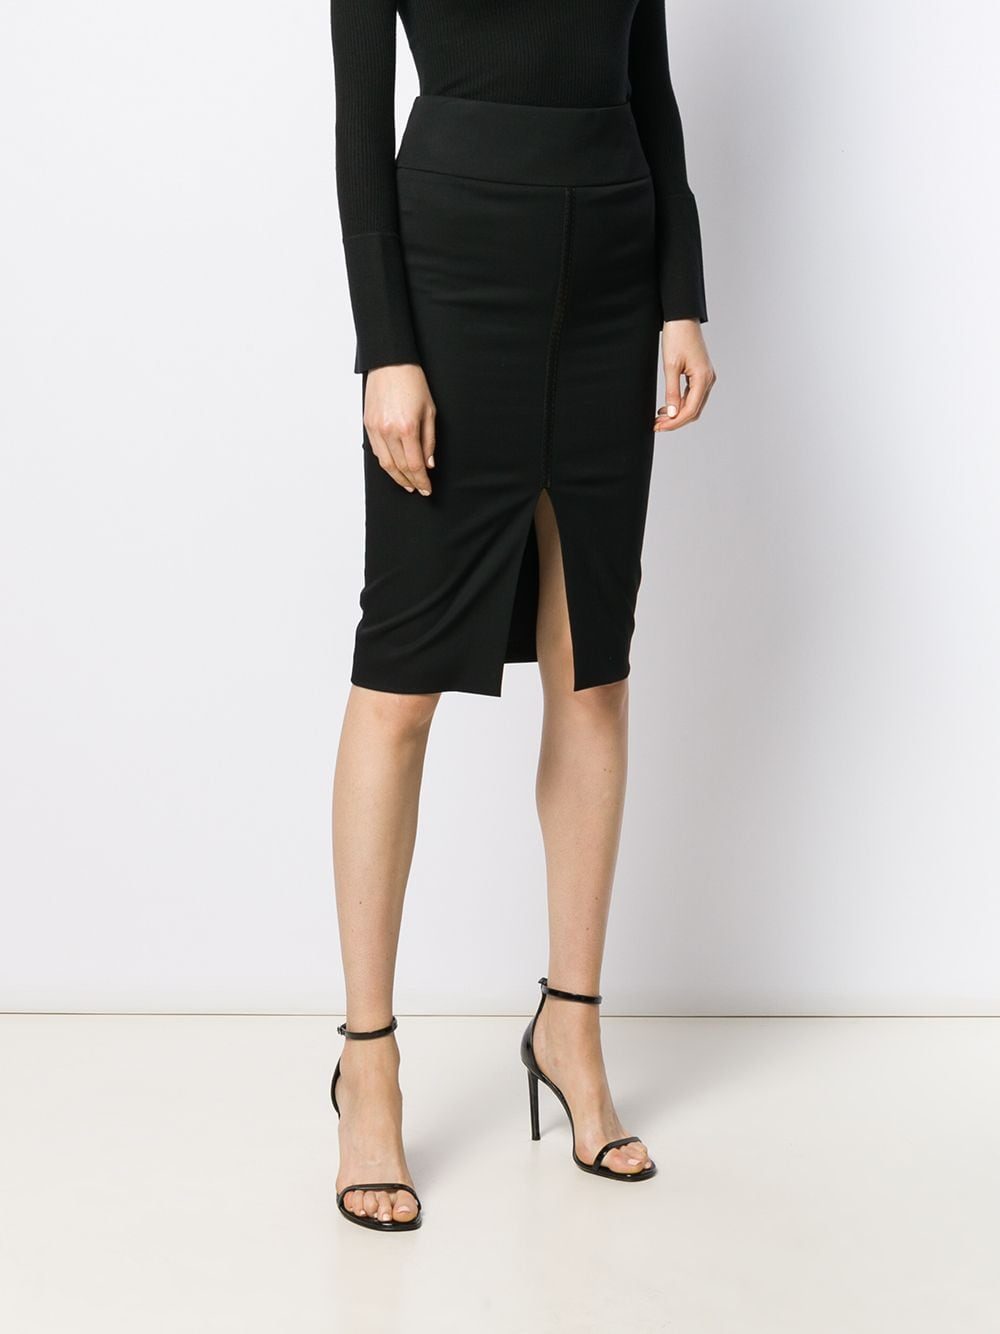 TOM FORD Front slit pencil skirt